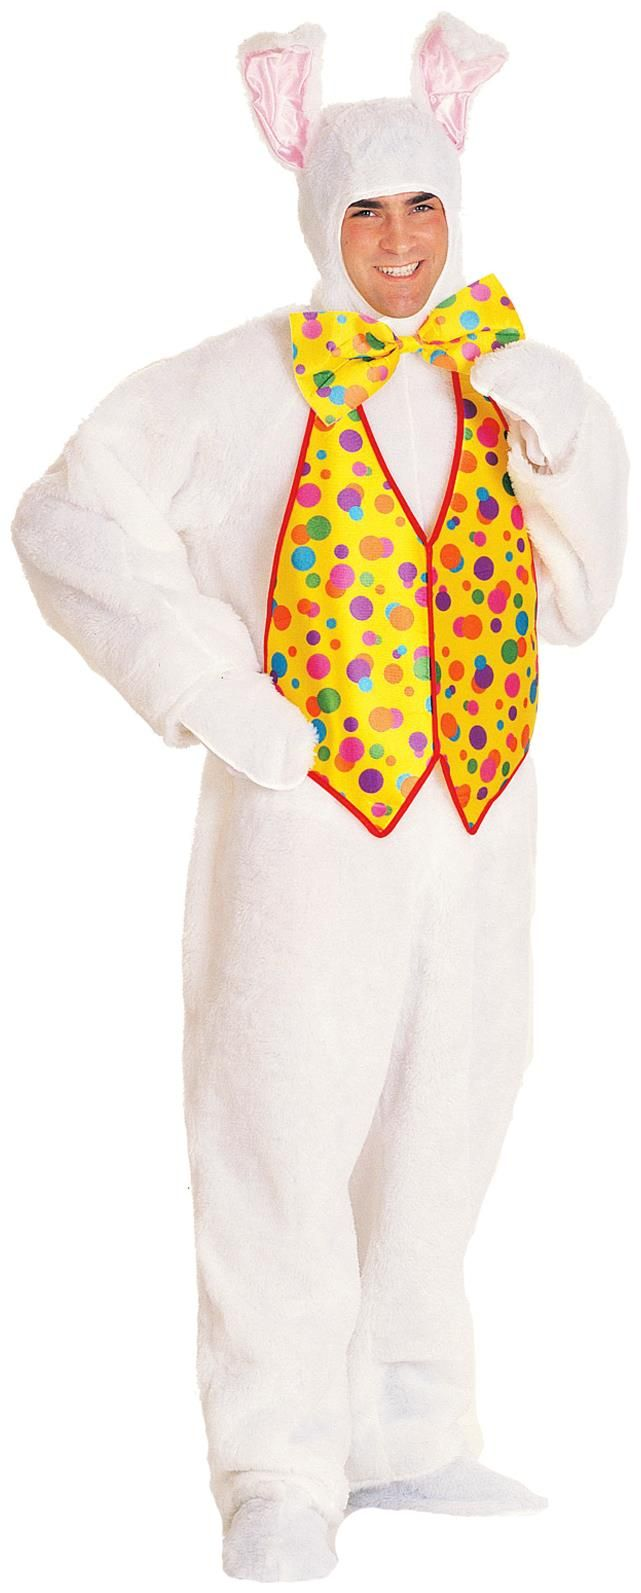 Majestic Standard Easter Bunny Suit Costume. An awesome collection of Bunny Costumes for Halloween at Partybell.    #easter #easterbunny #bunny